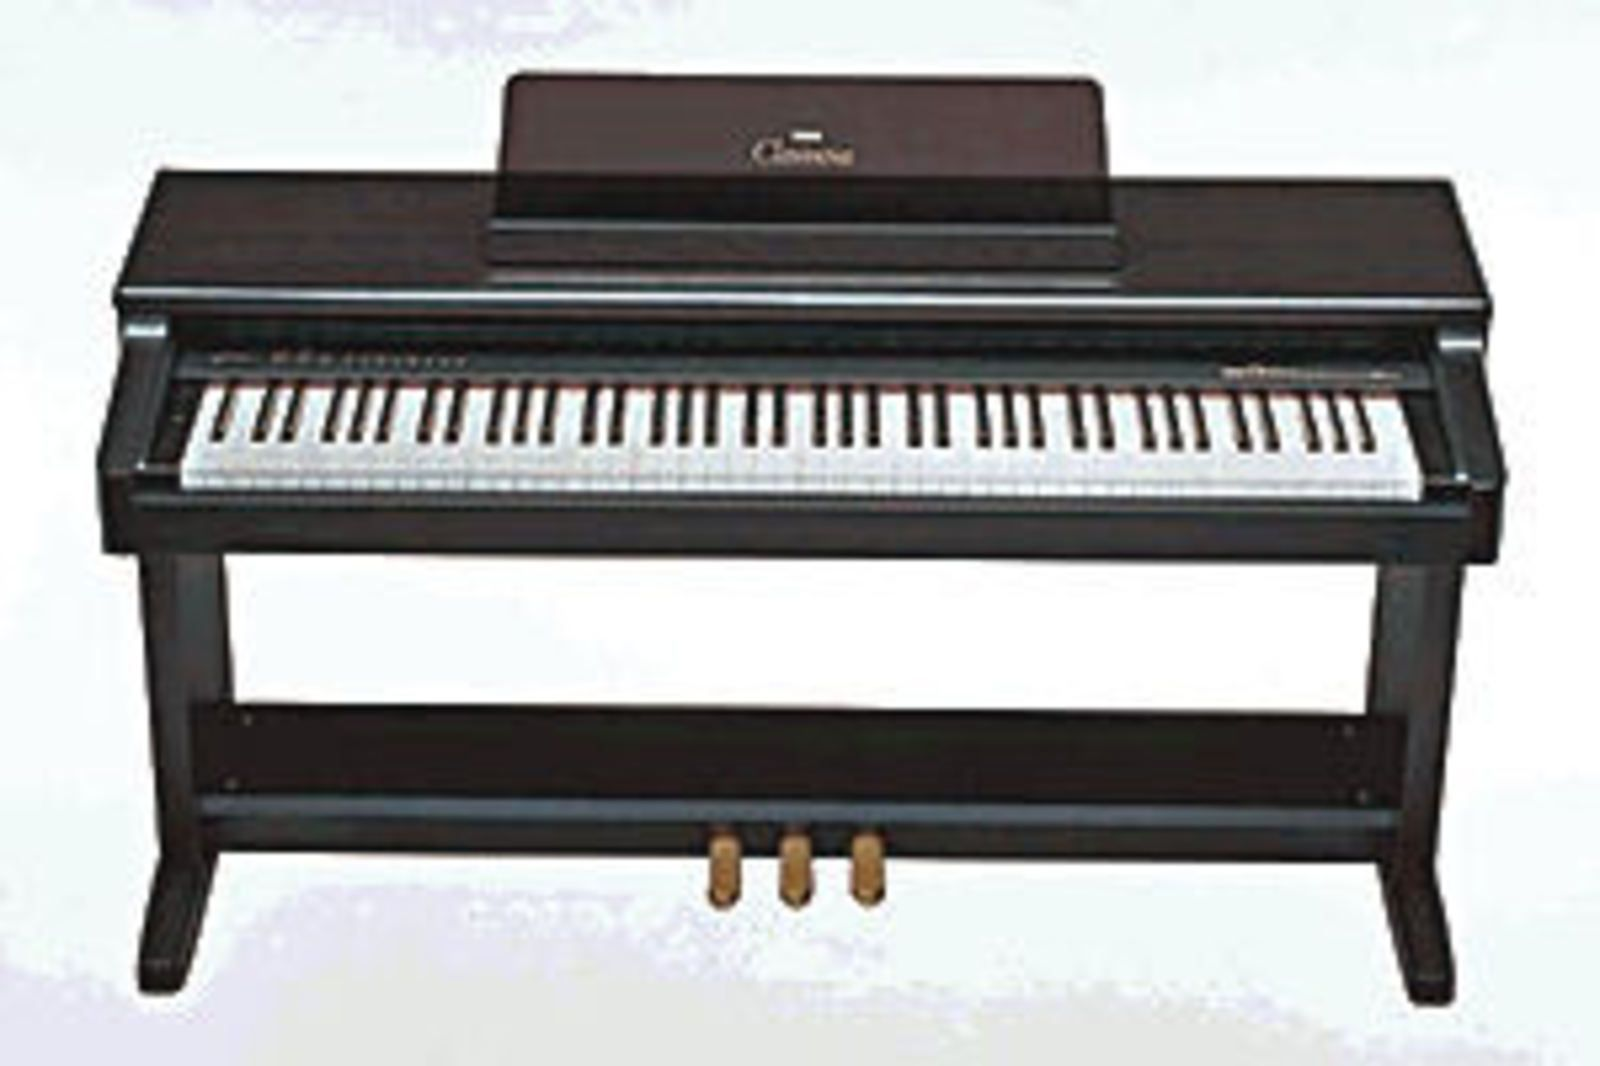 Yamaha clp 123 image 30046 audiofanzine for Yamaha clavinova price list